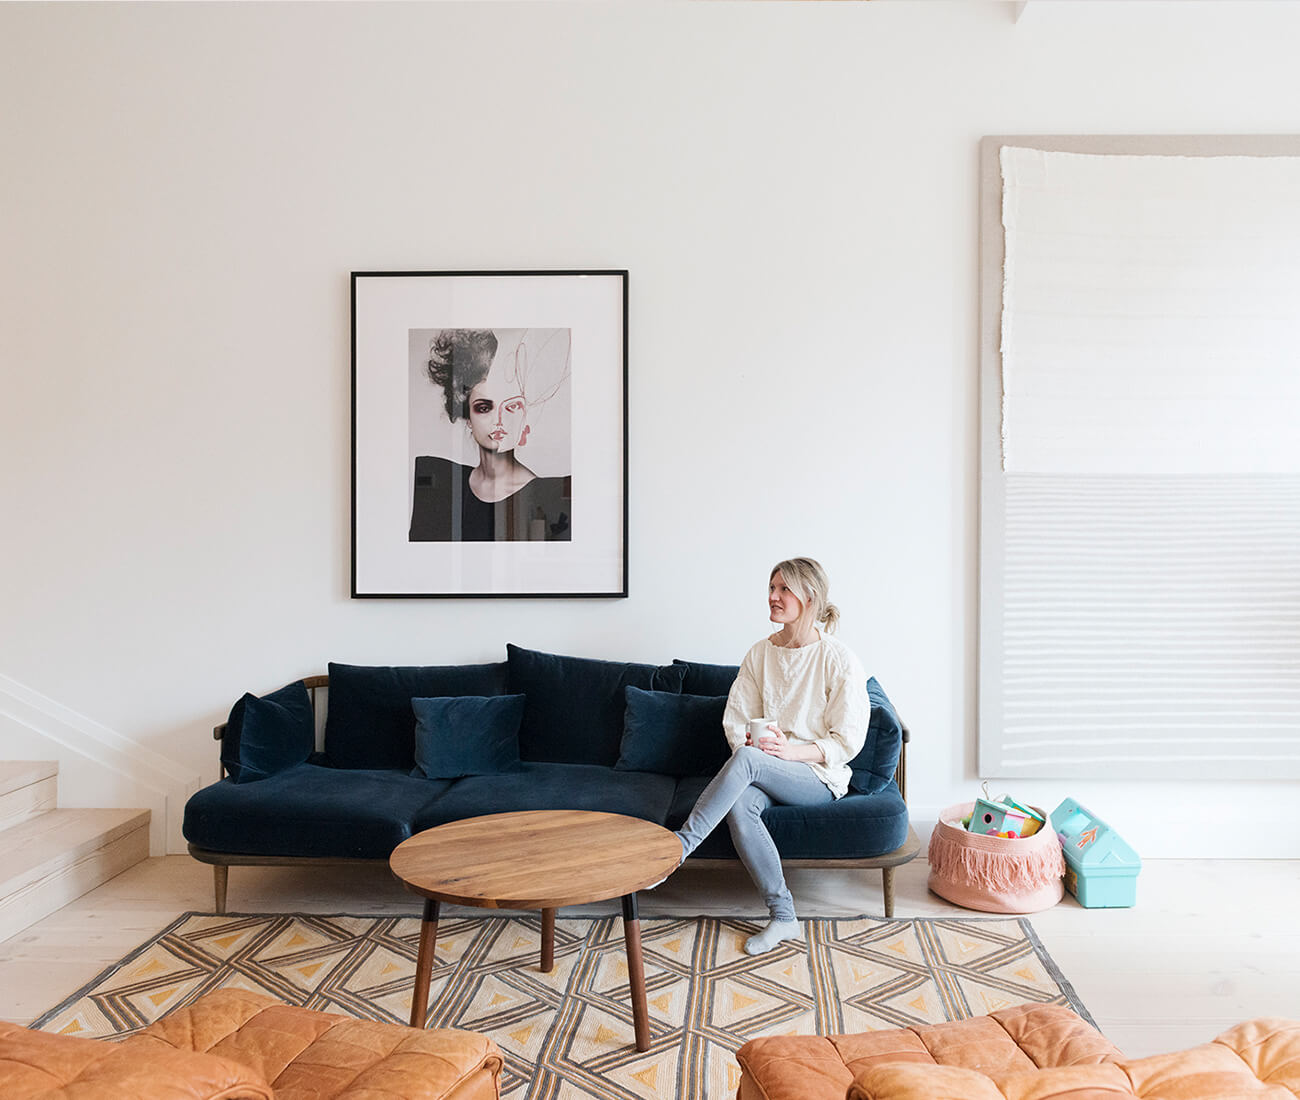 The artwork to the left is a collaboration between artist Tina Berning and photographer Michelangelo Di Battista. The large artwork to the right is by Alexander Jowett. Both are available at Alison Milne Co.